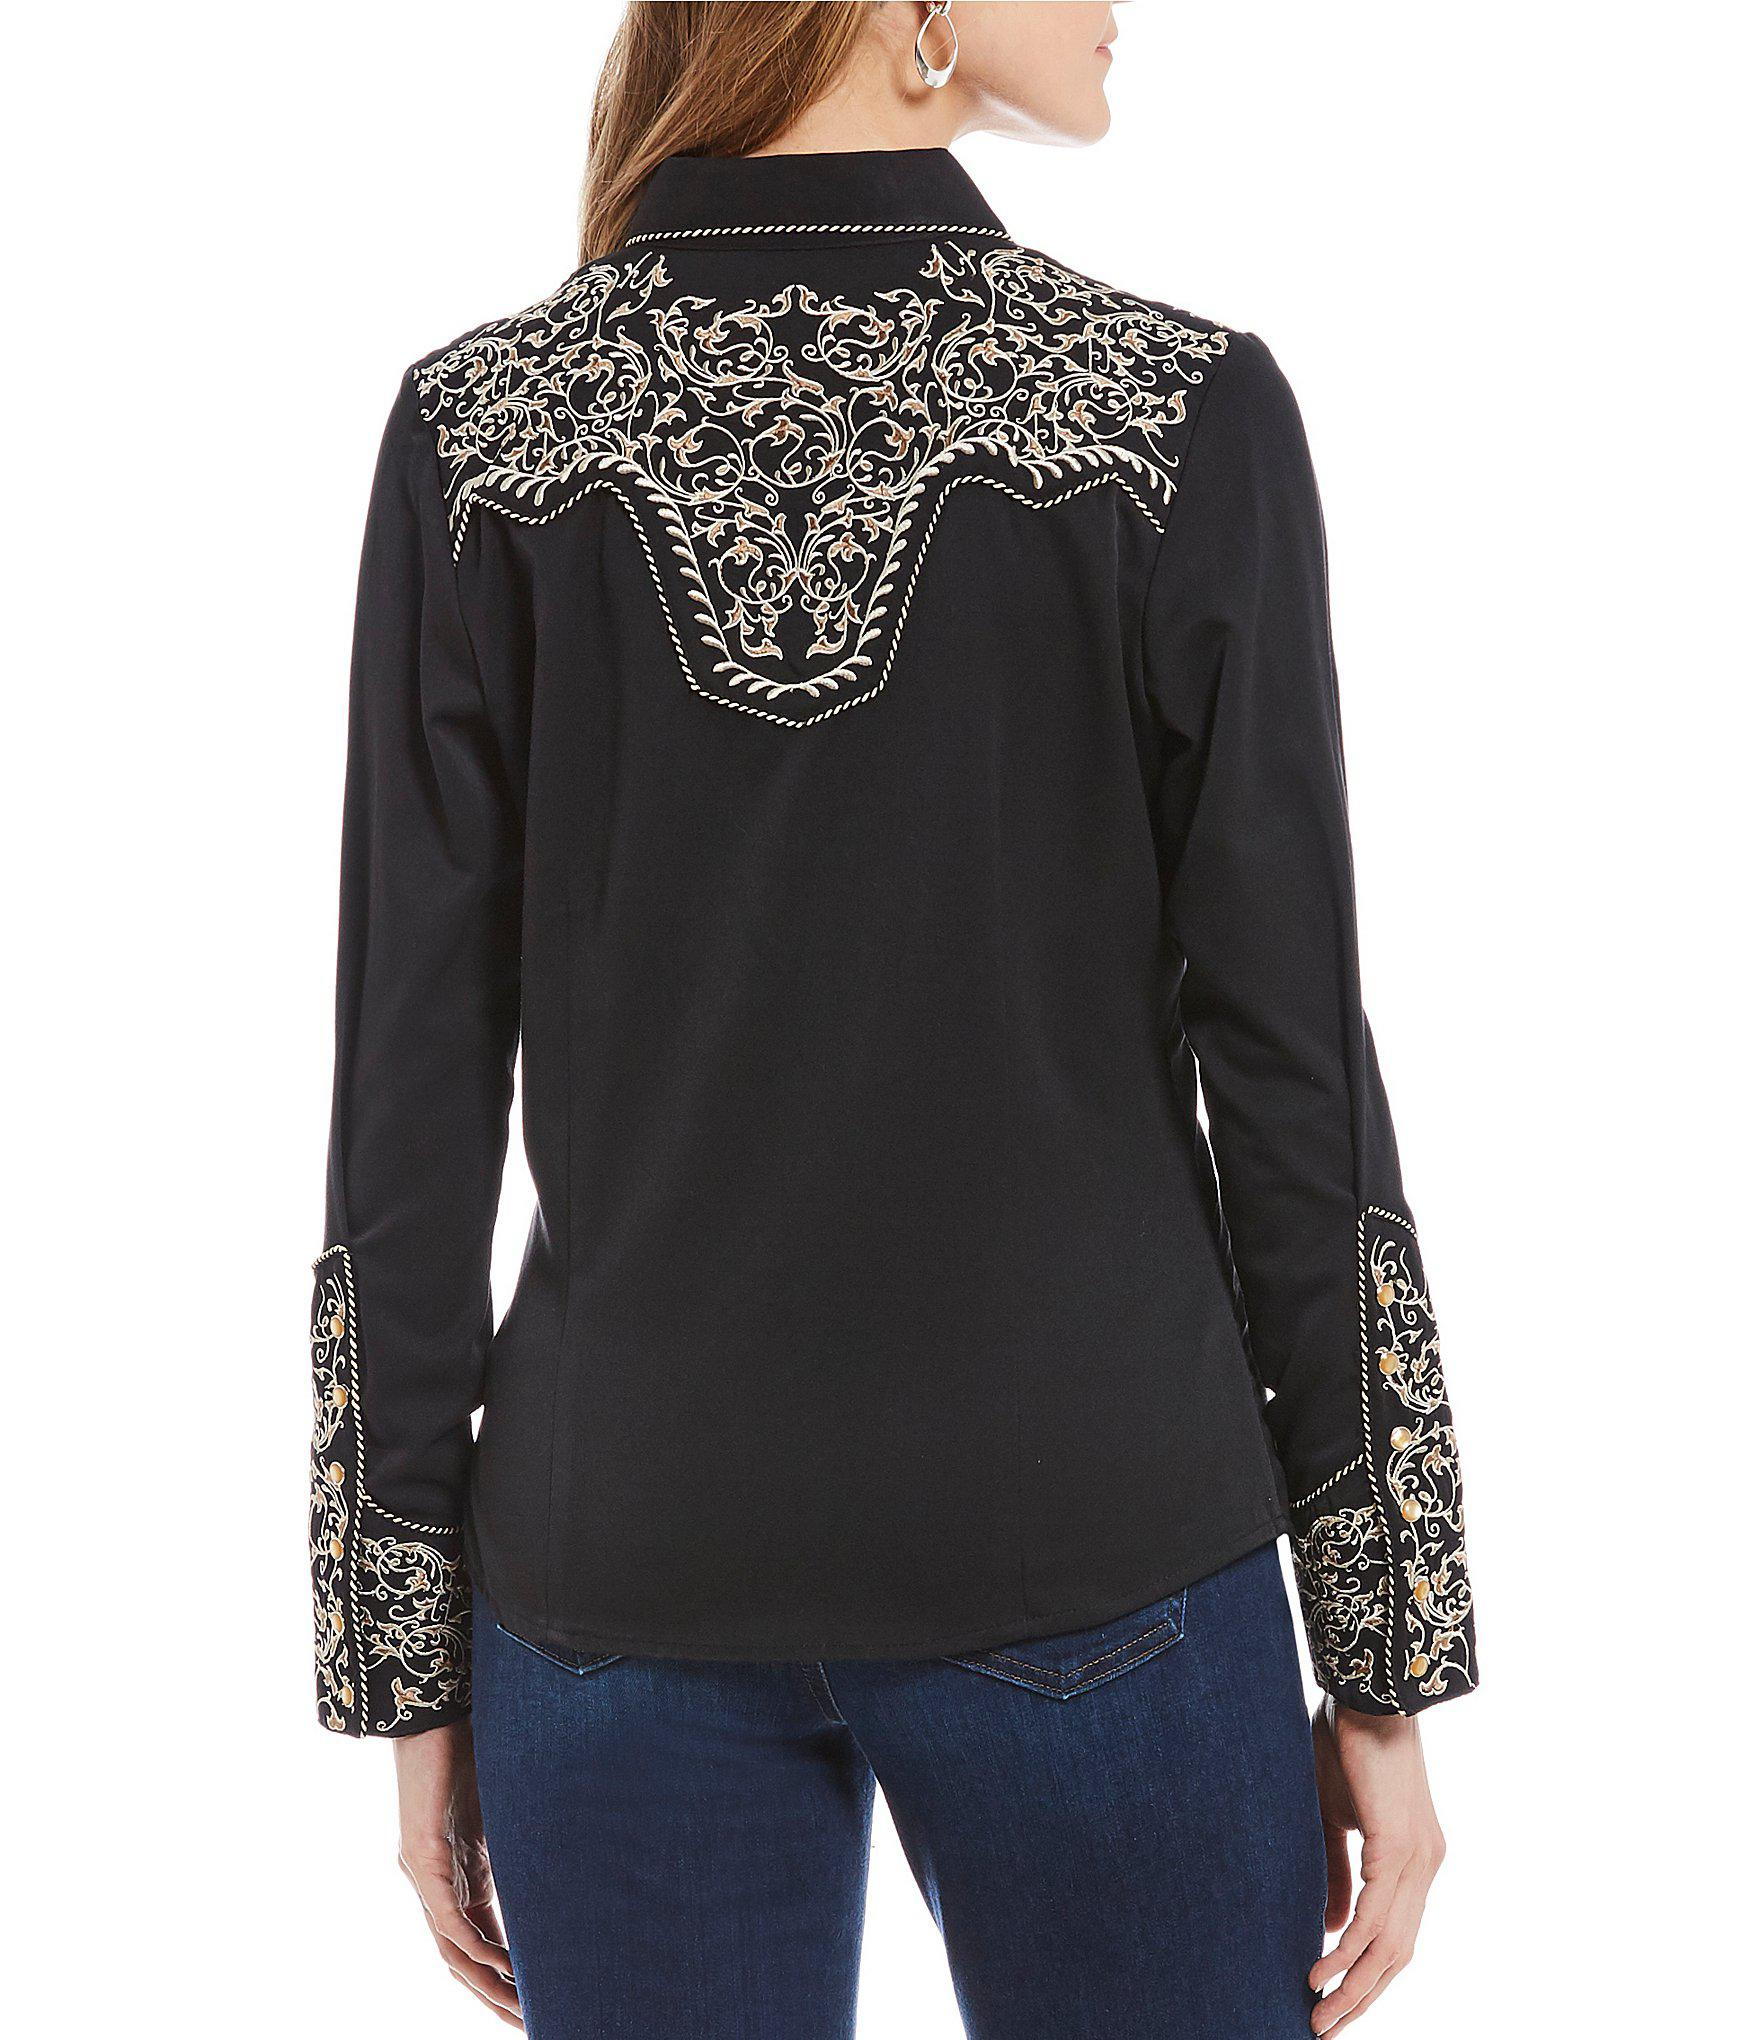 c9749440ccb2a6 Lyst - Scully Two-tone Scroll Embroidered Western Shirt in Black